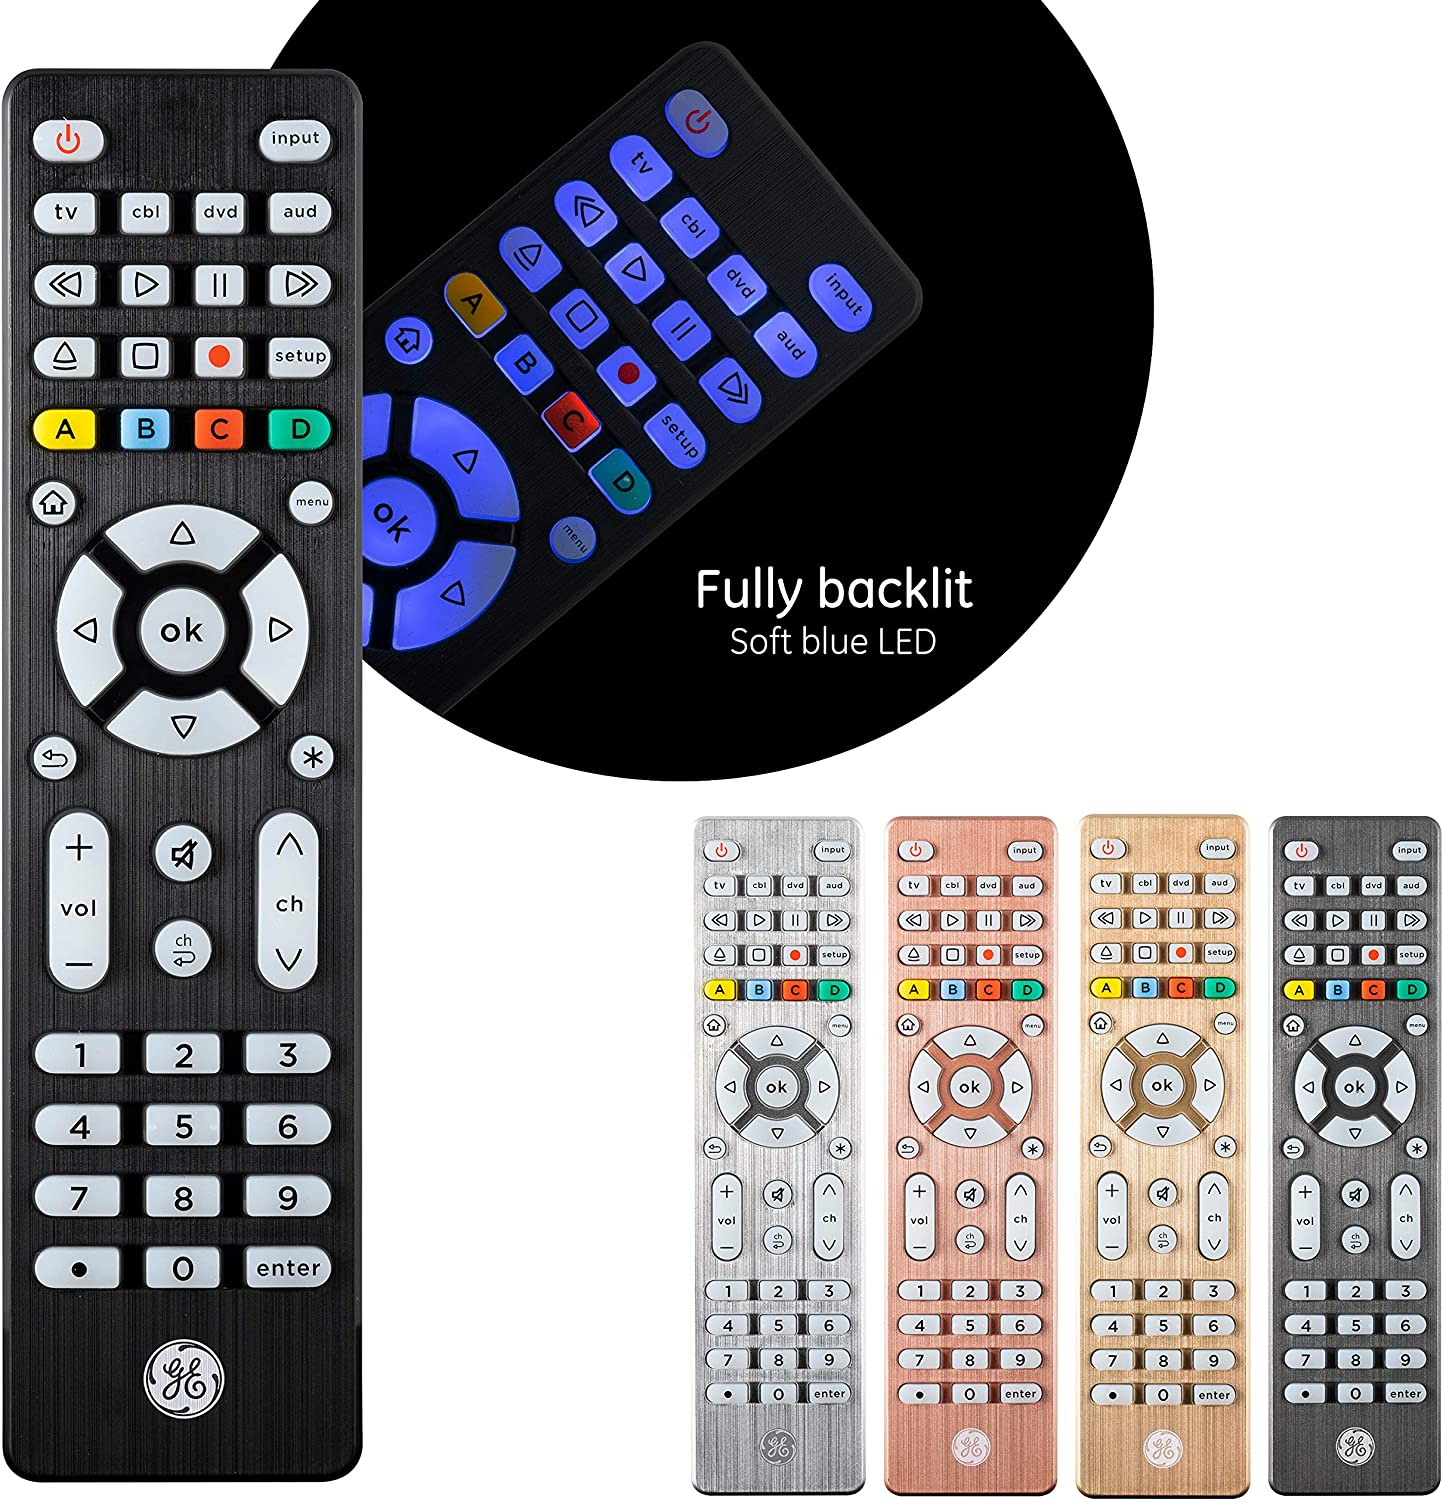 GE Backlit Universal Remote Control for Samsung, Vizio, LG, Sony, Sharp, Roku, Apple TV, RCA, Panasonic, Smart TV, Streaming Players, Blu-Ray, DVD, Simple Setup, 4-Device, Black, 48843